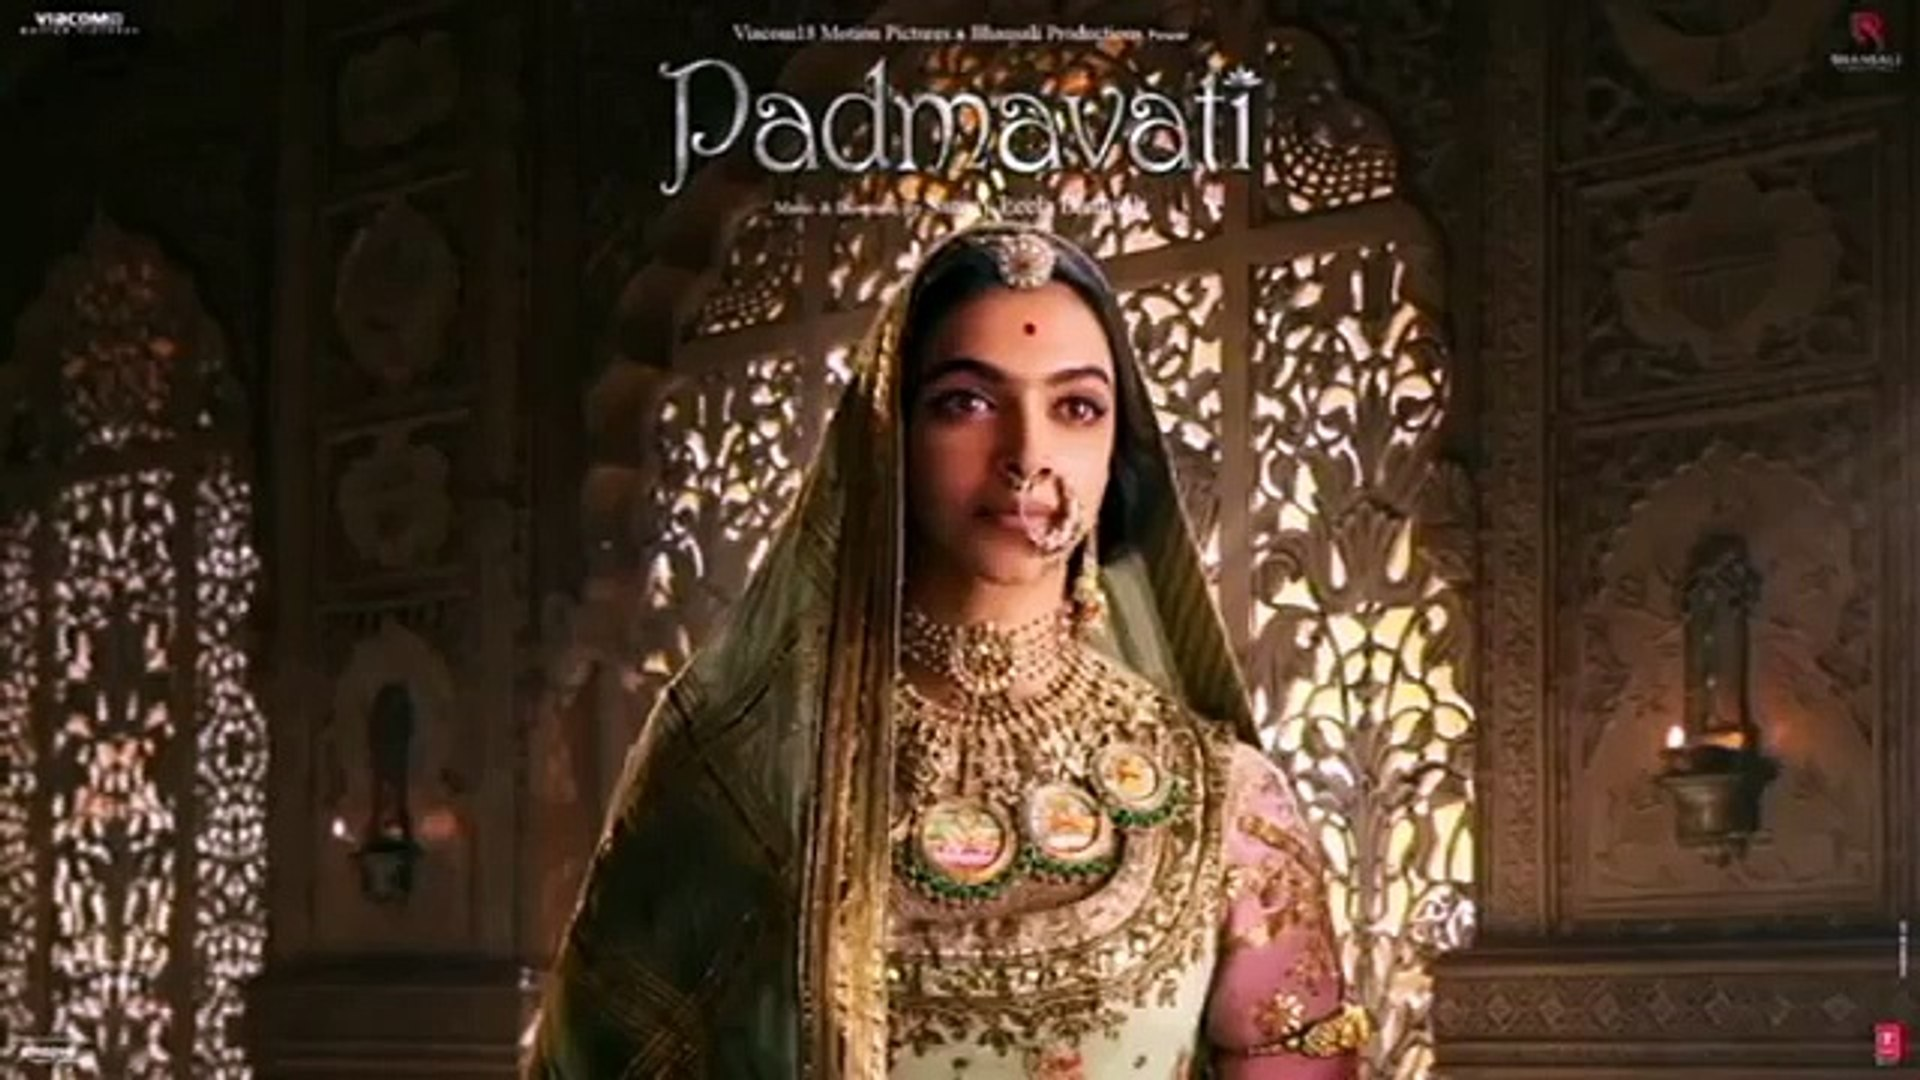 Sun Yara Padmaavati New Song ( Padmavati new song)